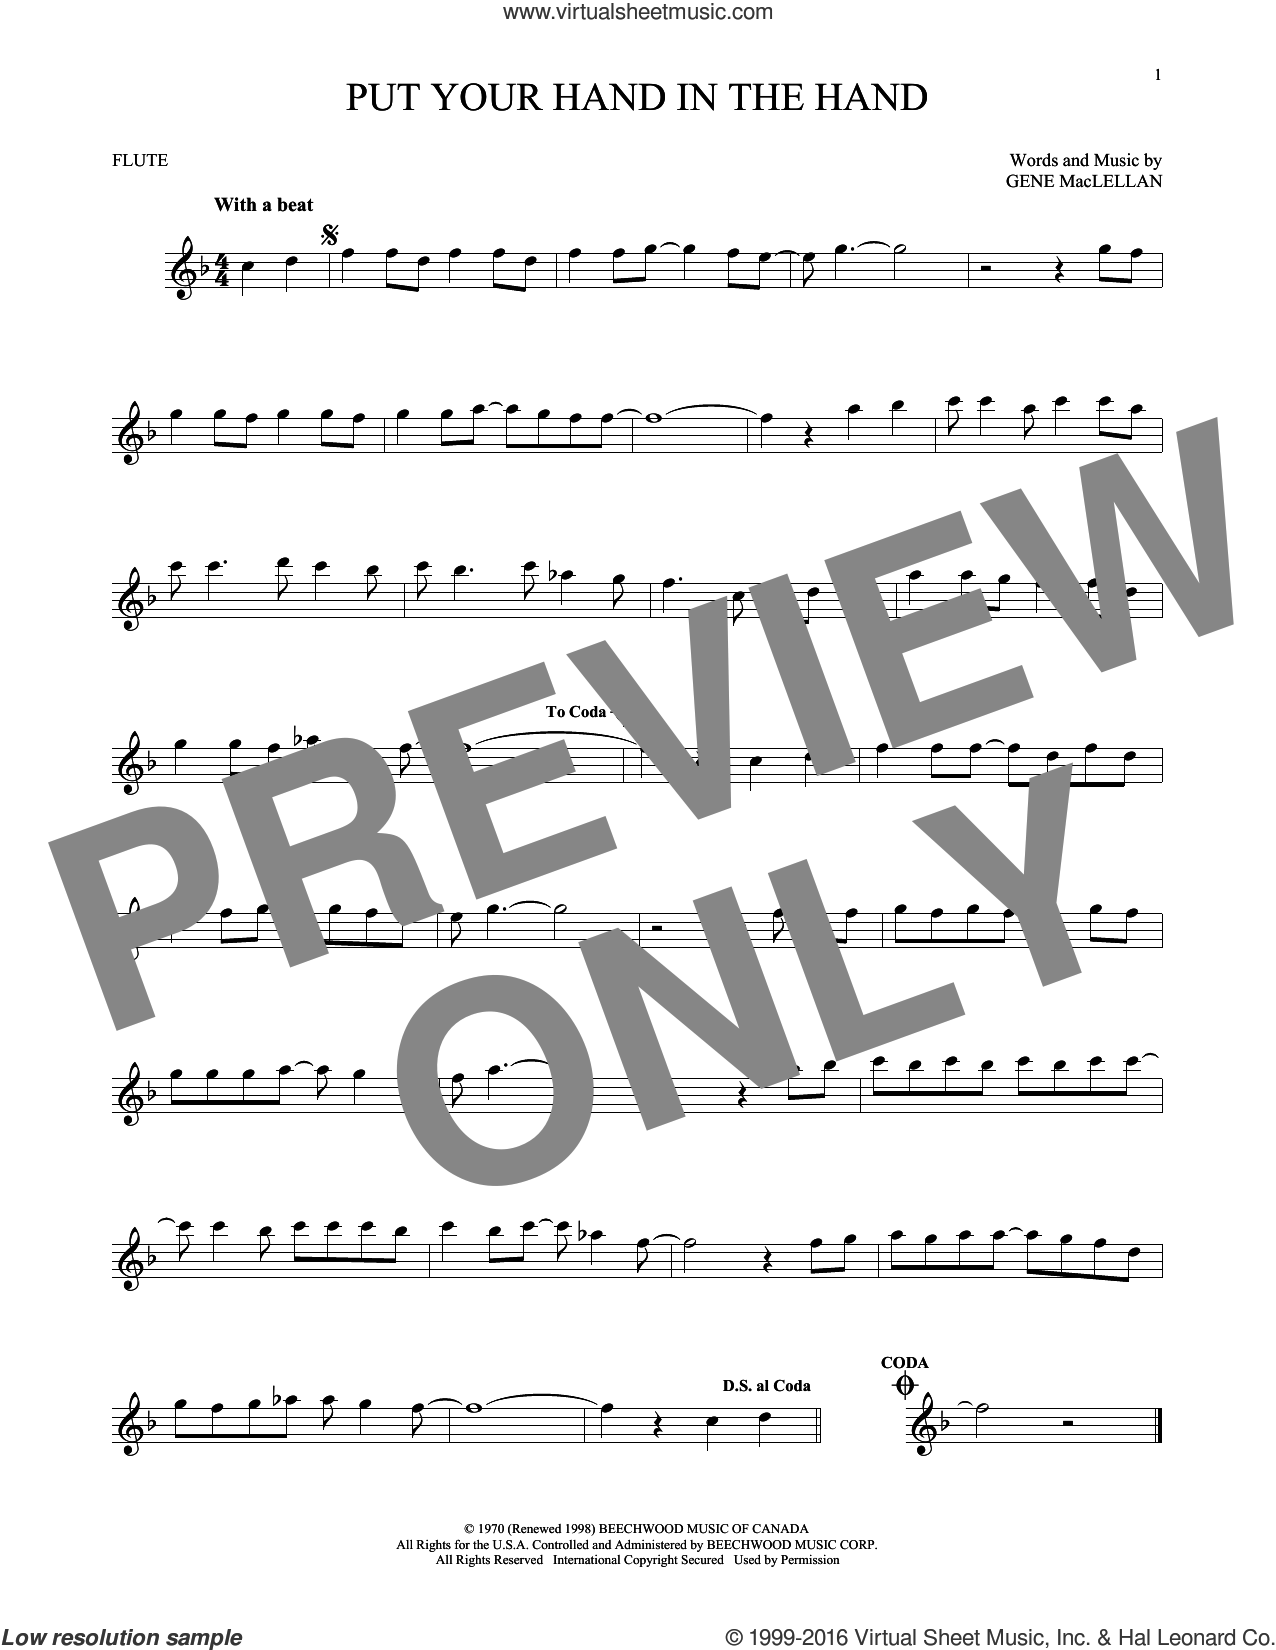 Put Your Hand In The Hand sheet music for flute solo by Gene MacLellan. Score Image Preview.